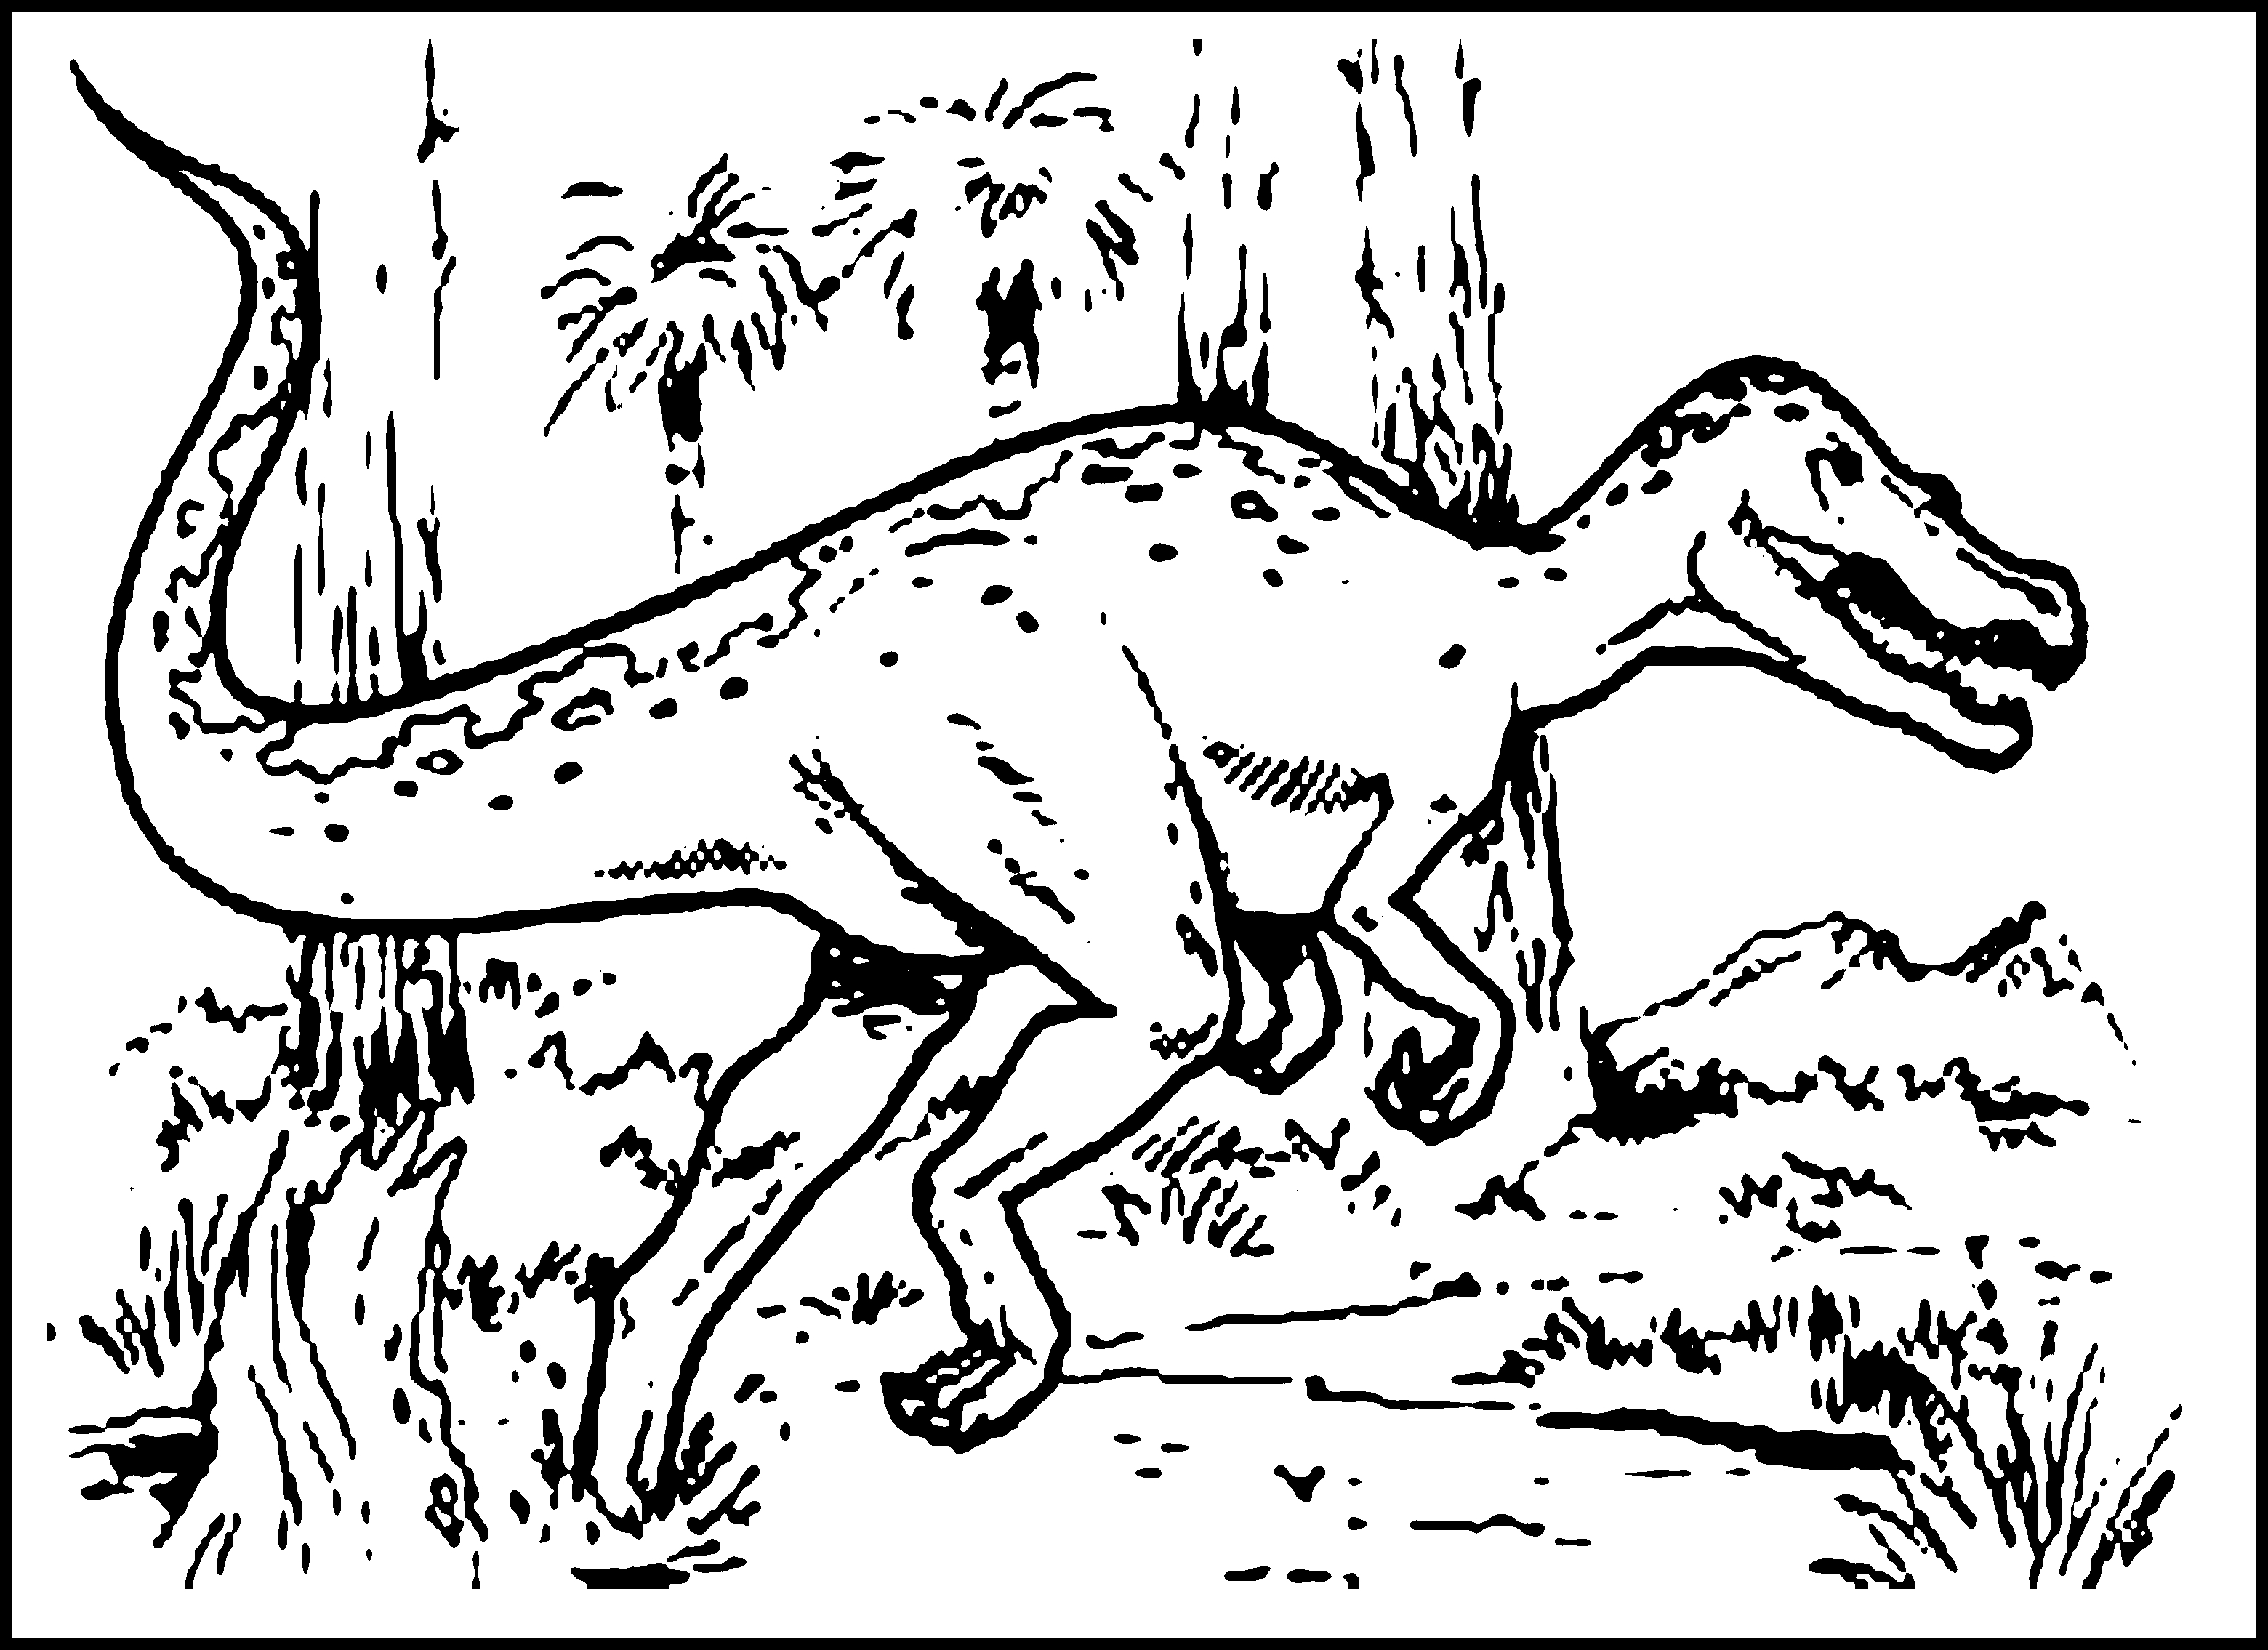 colouring in dinosaurs baby dinosaur coloring pages for preschoolers activity colouring dinosaurs in